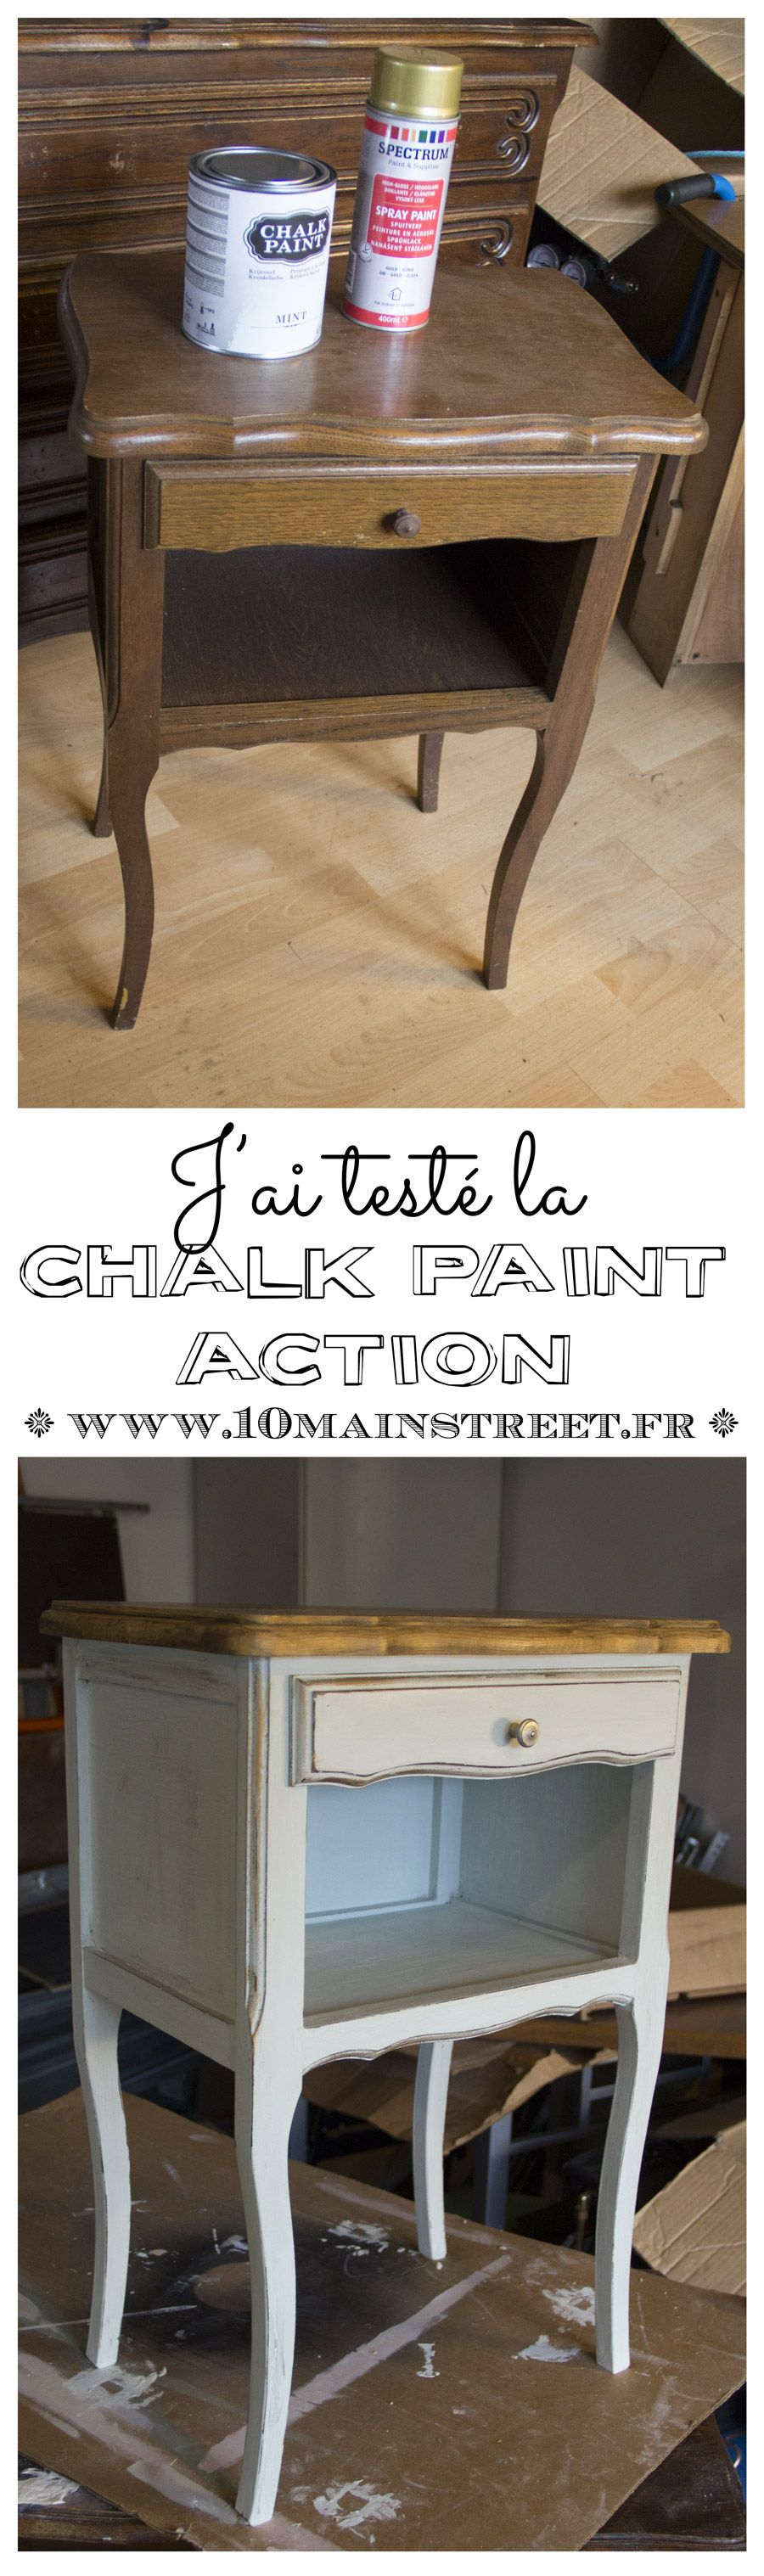 j 39 ai test la chalk paint action et c 39 est plut t bien en fait meuble pinterest bricolage. Black Bedroom Furniture Sets. Home Design Ideas